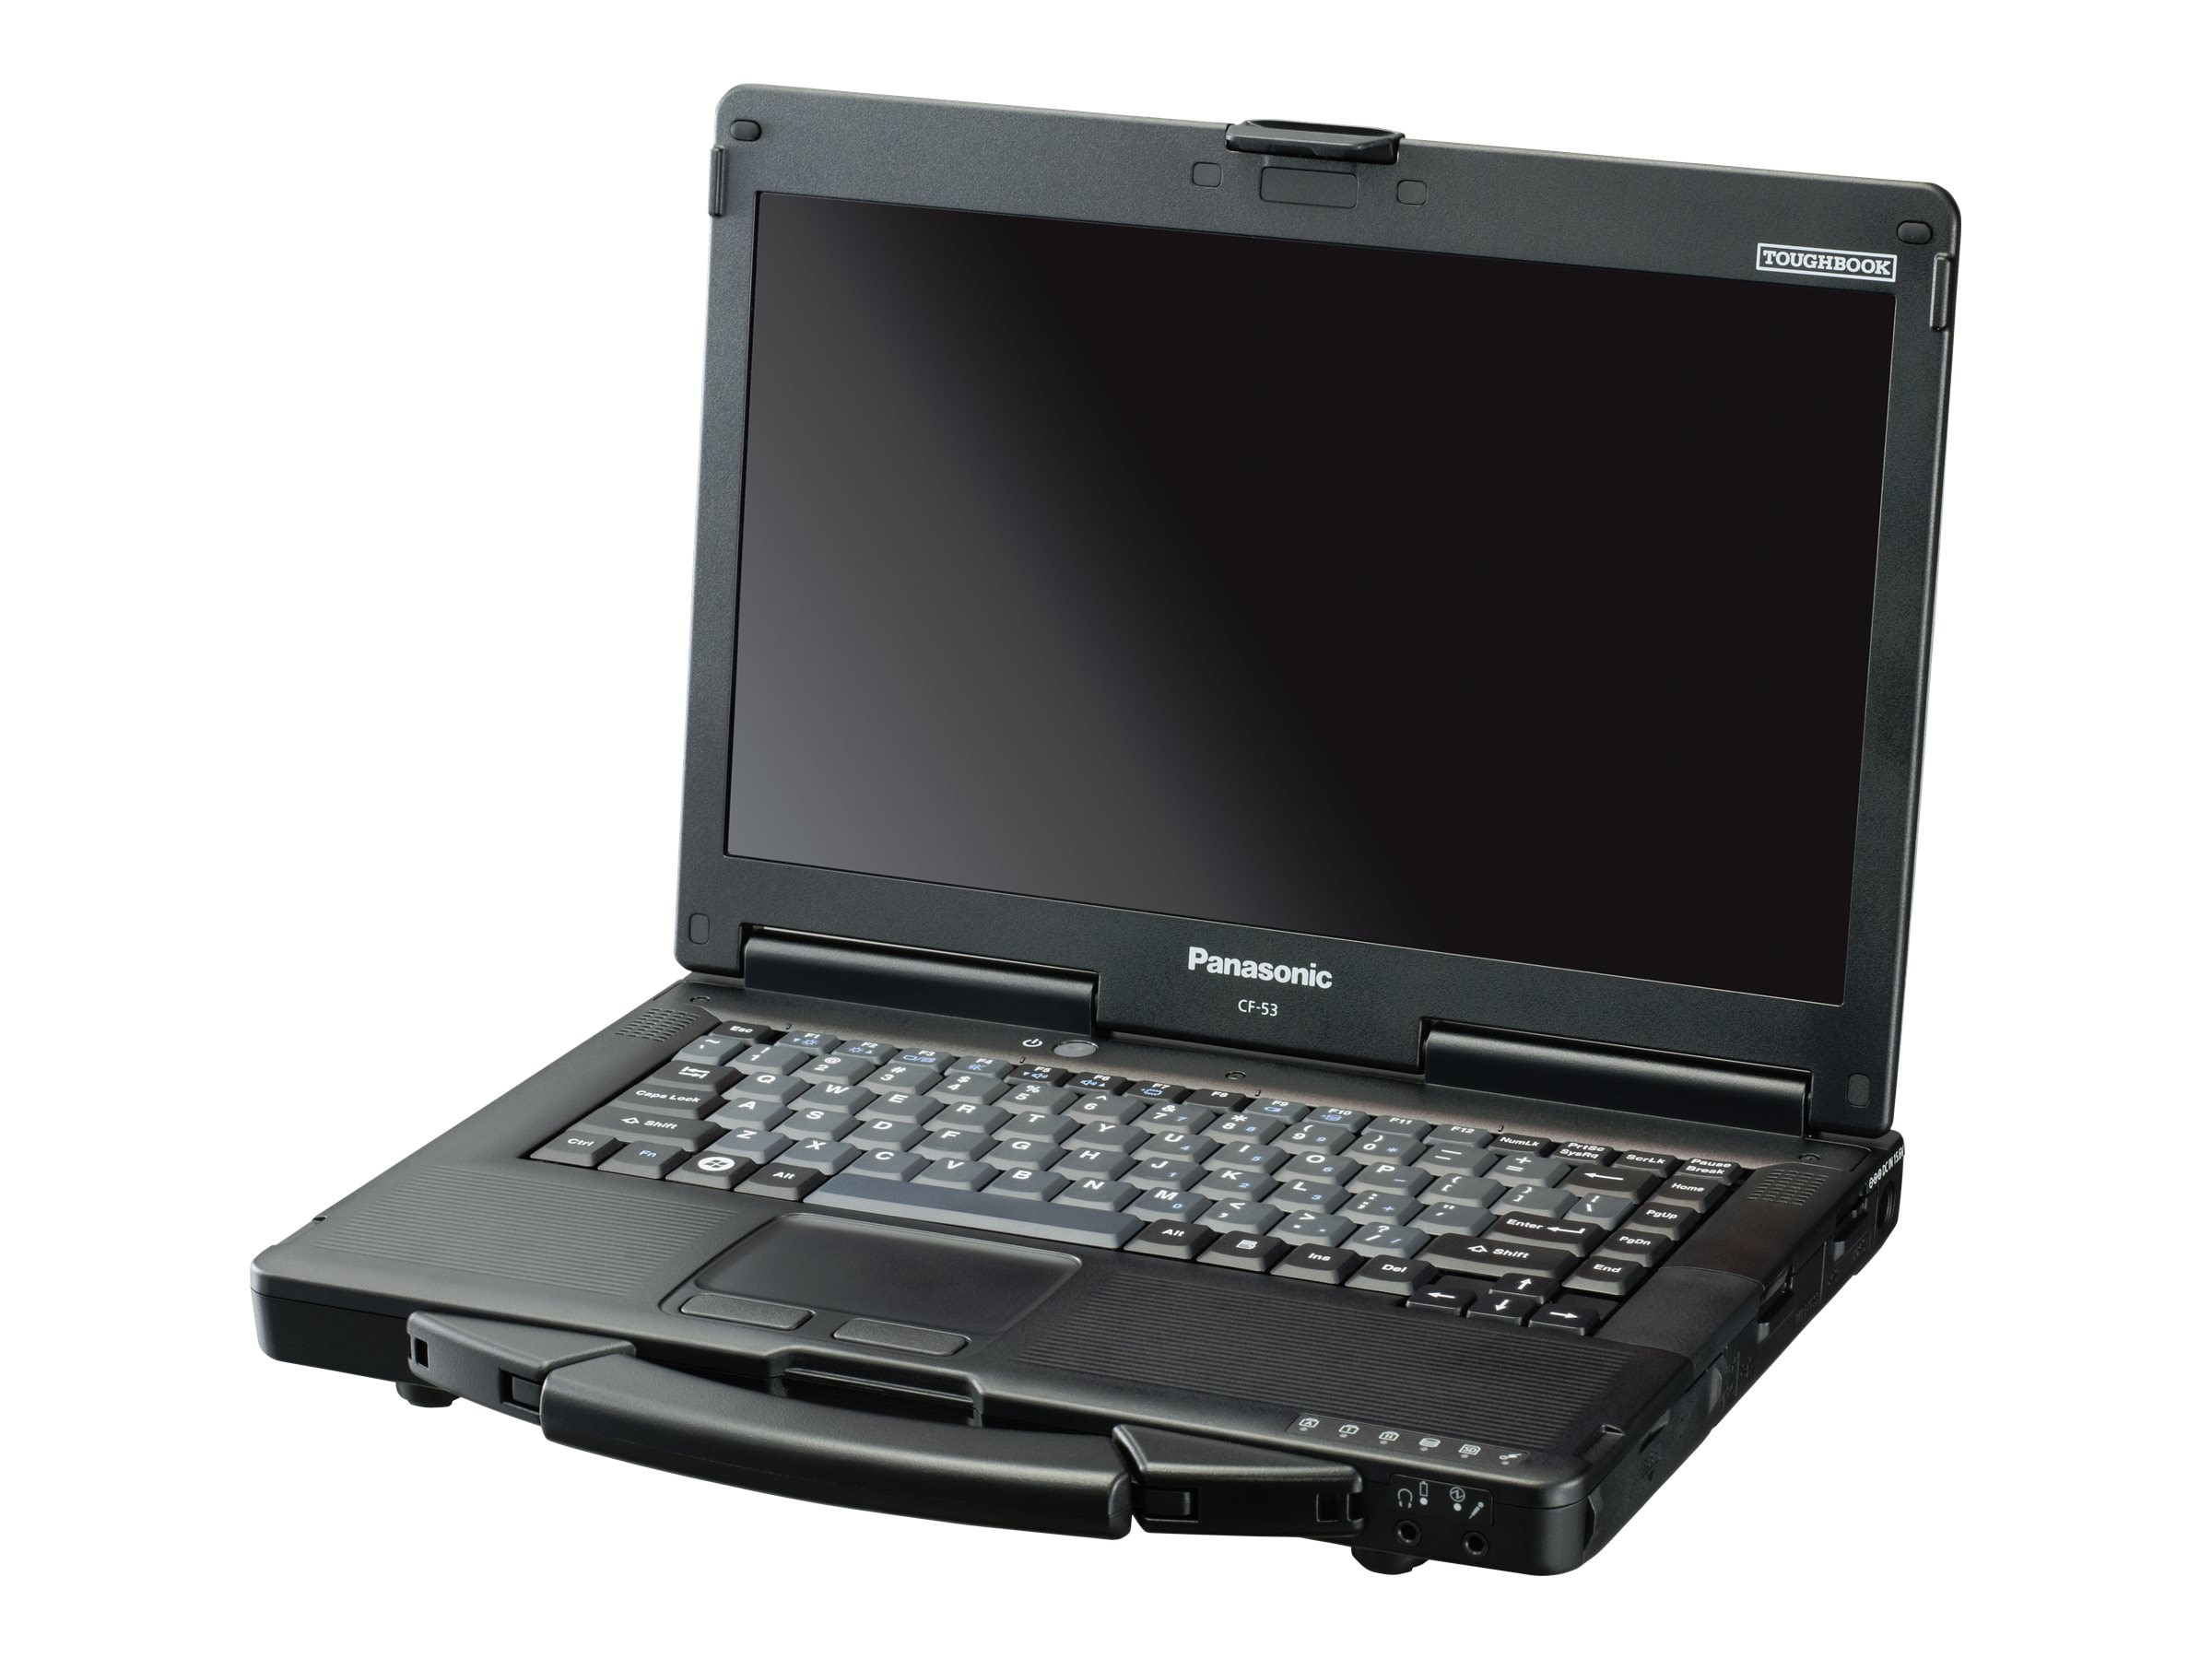 Panasonic Toughbook 53 2GHz Core i5 14in display, CF-532CLZYTM